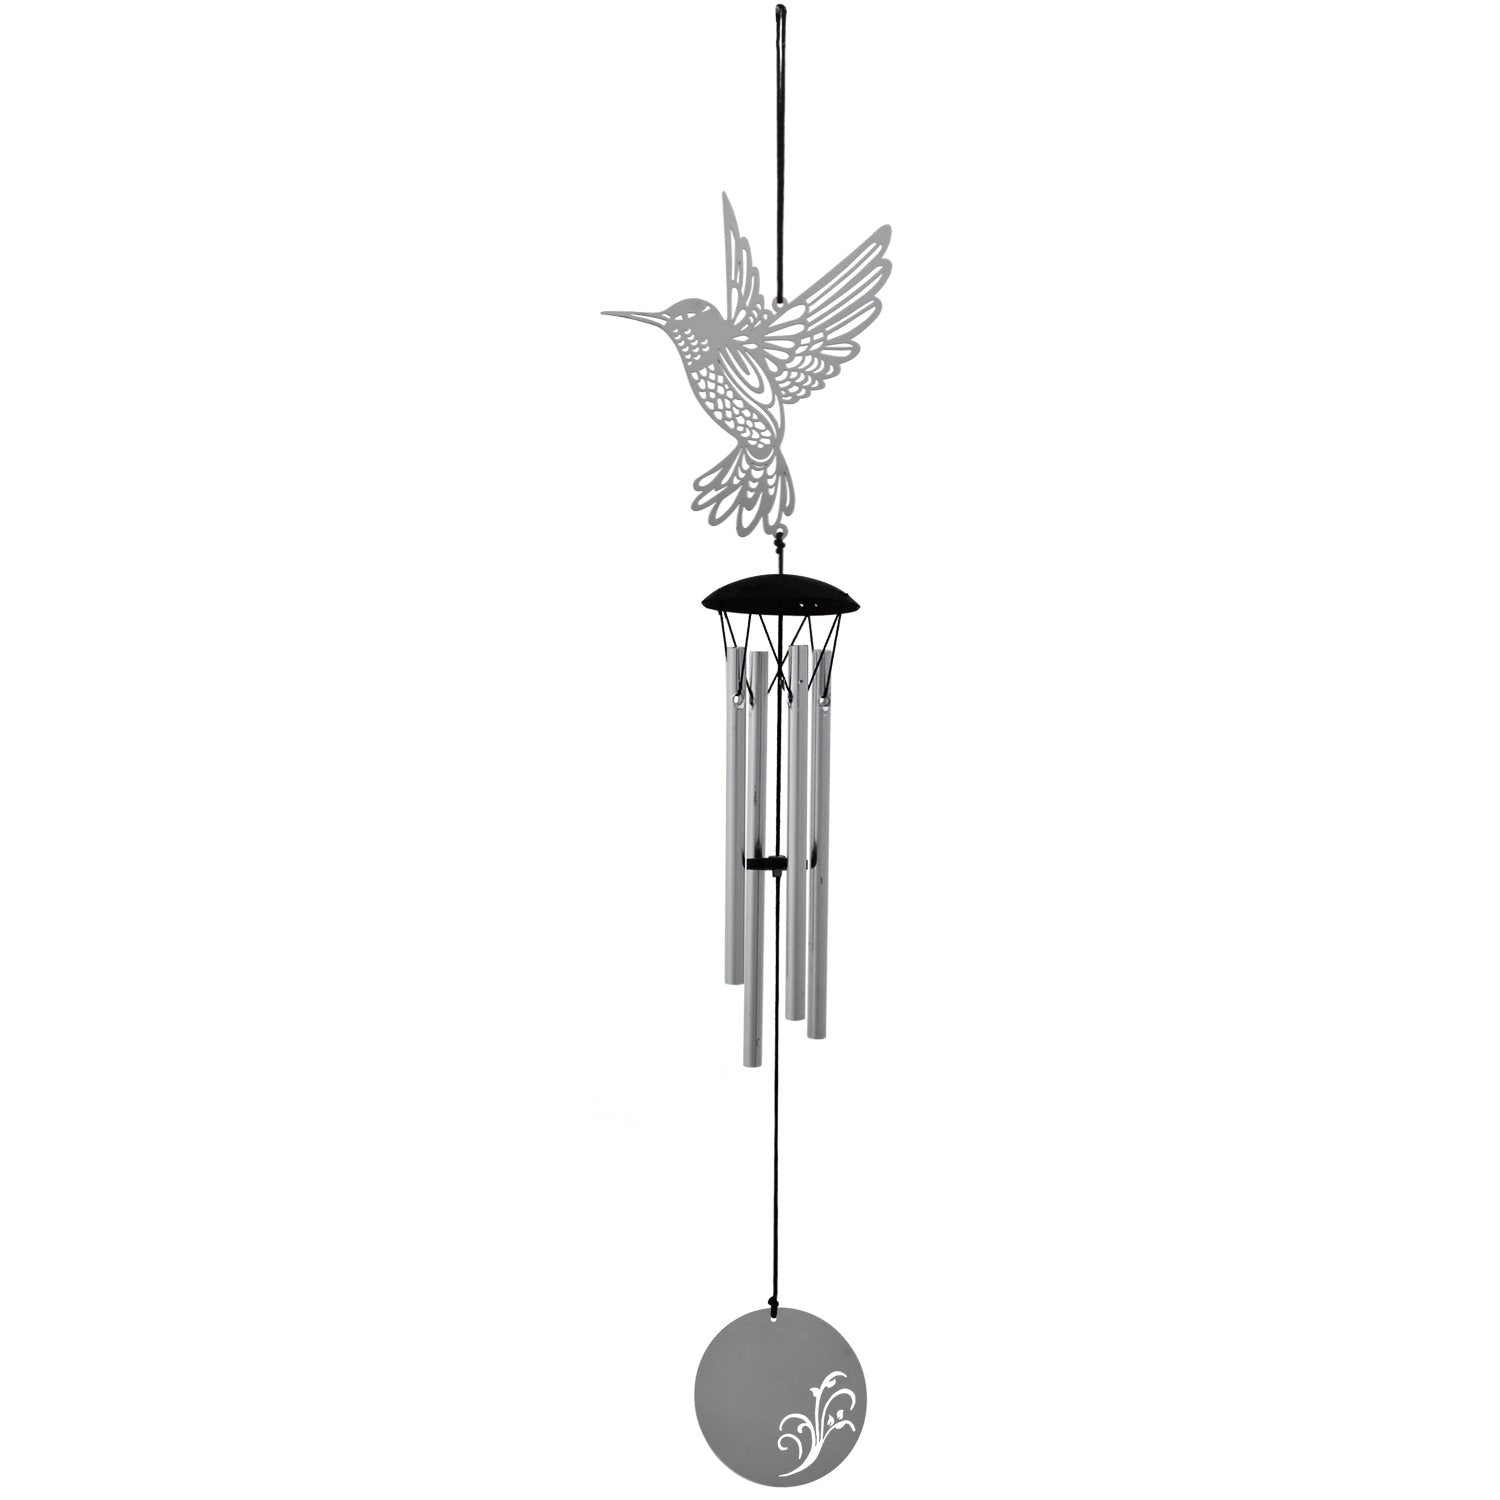 Flourish Chime - Hummingbird full product image